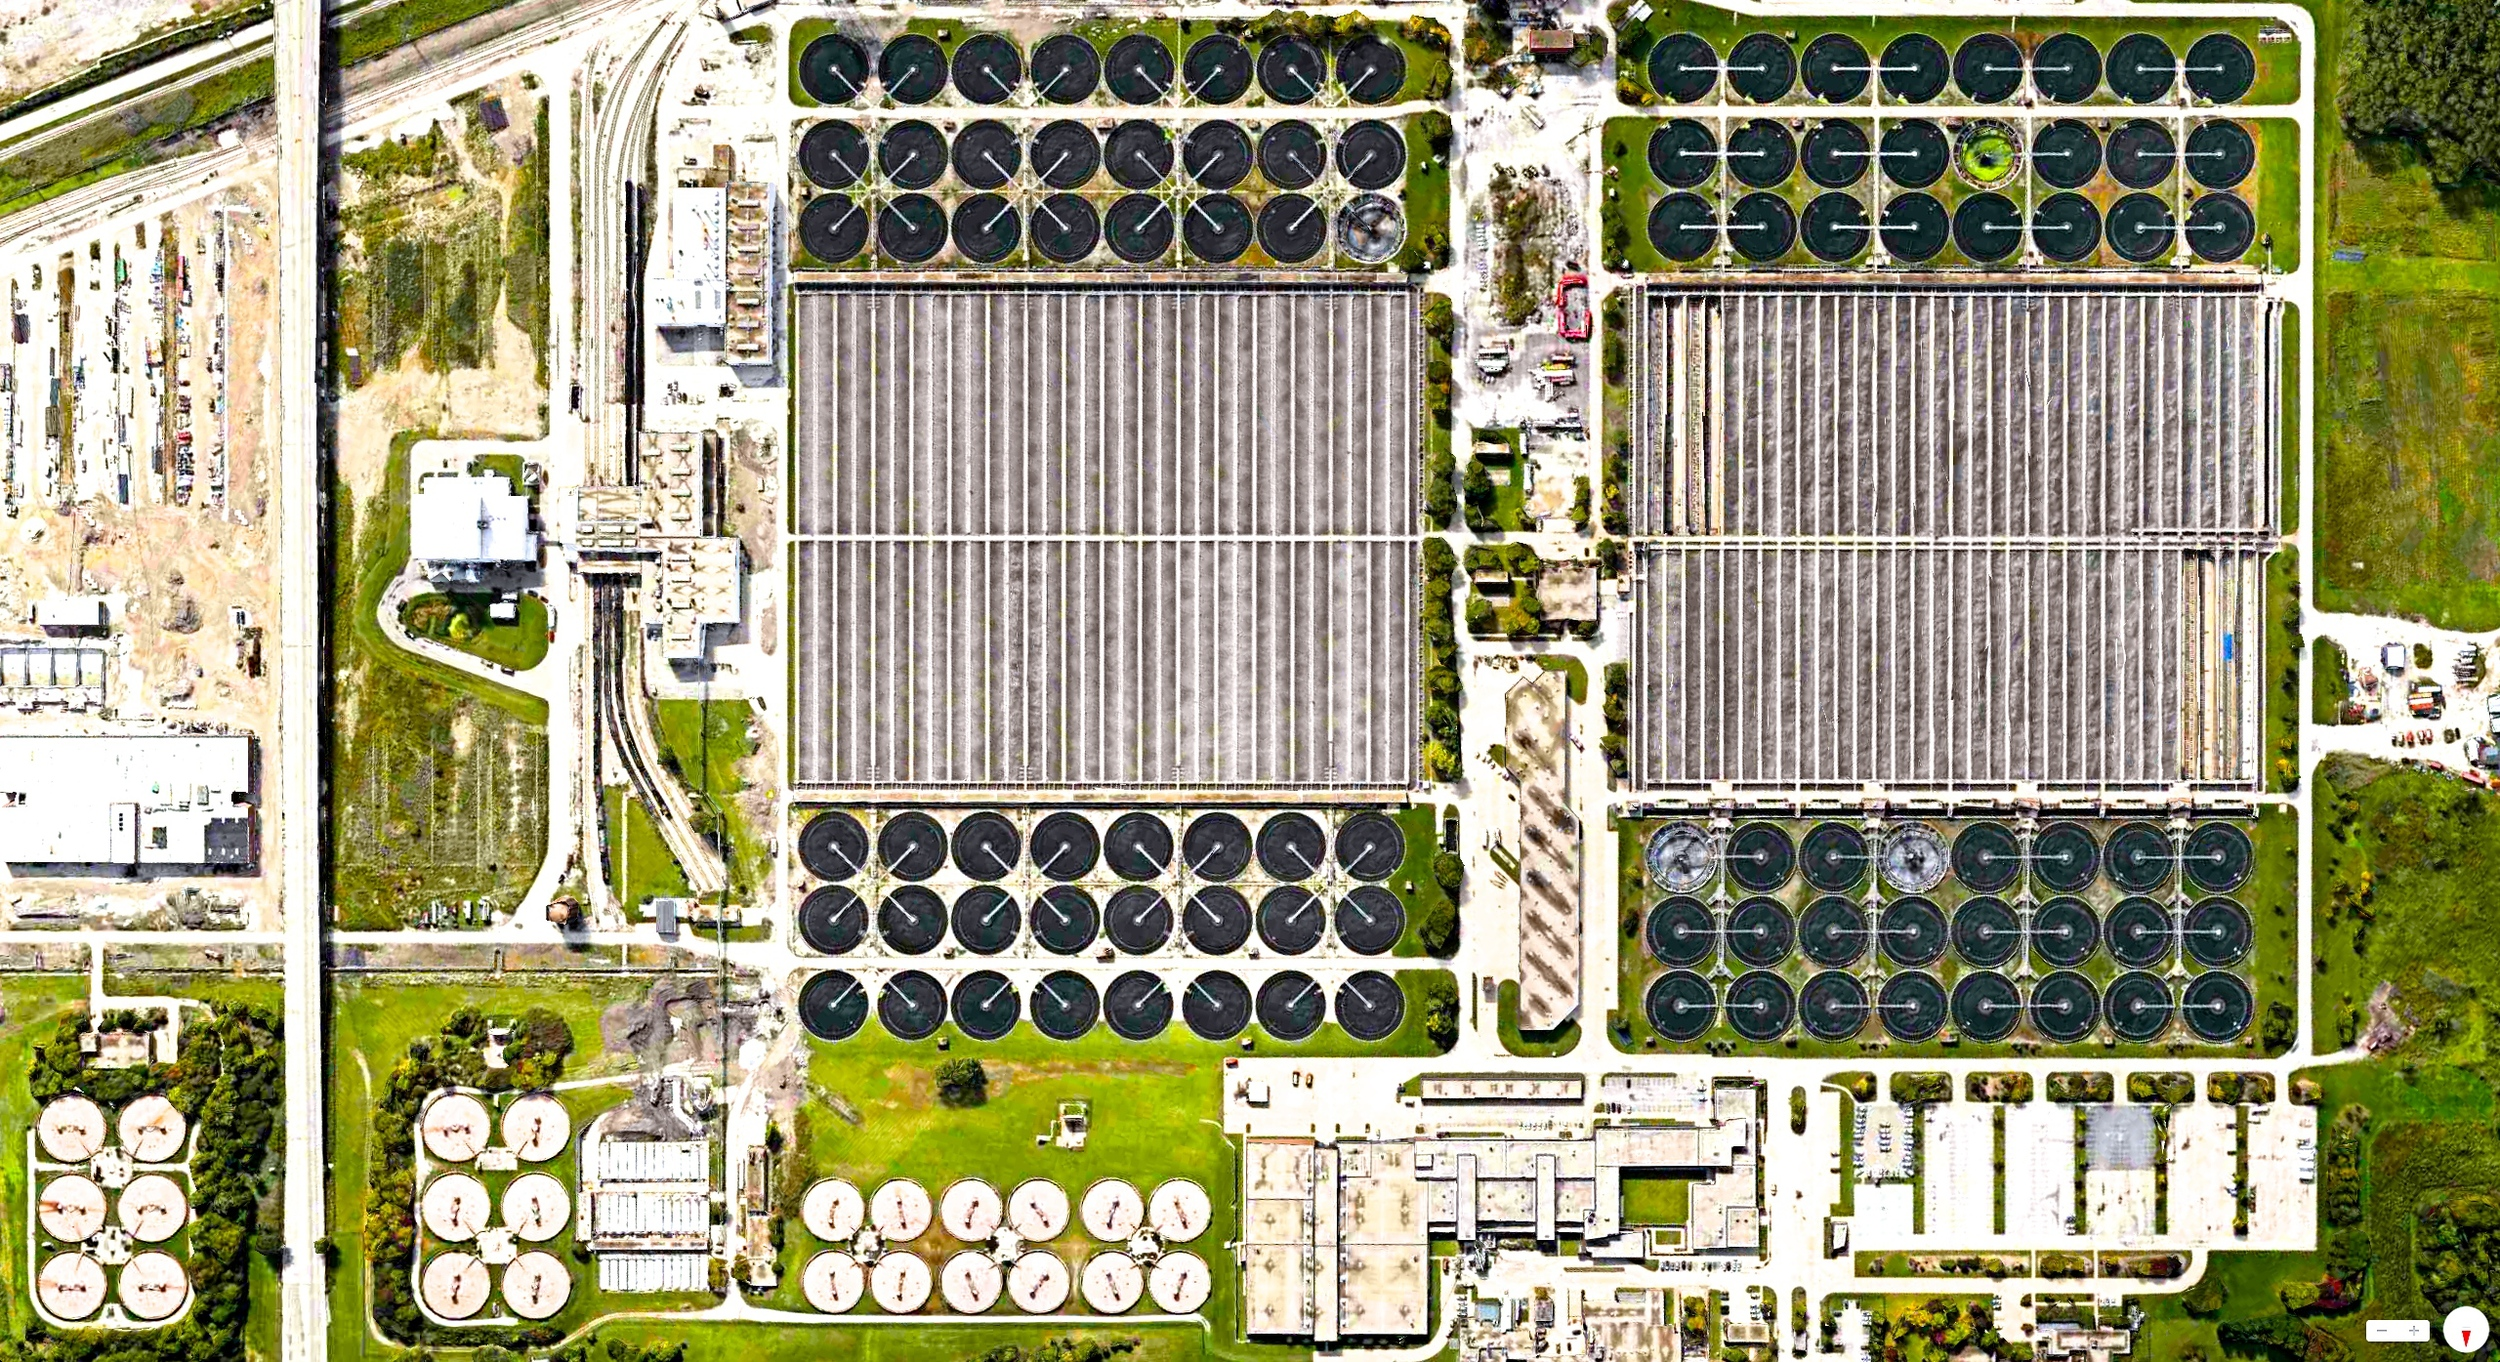 12/30/2013    Stickney Water Reclamation Plant   Cicero, Illinois, USA   41°50′43″N 87°45′36″W